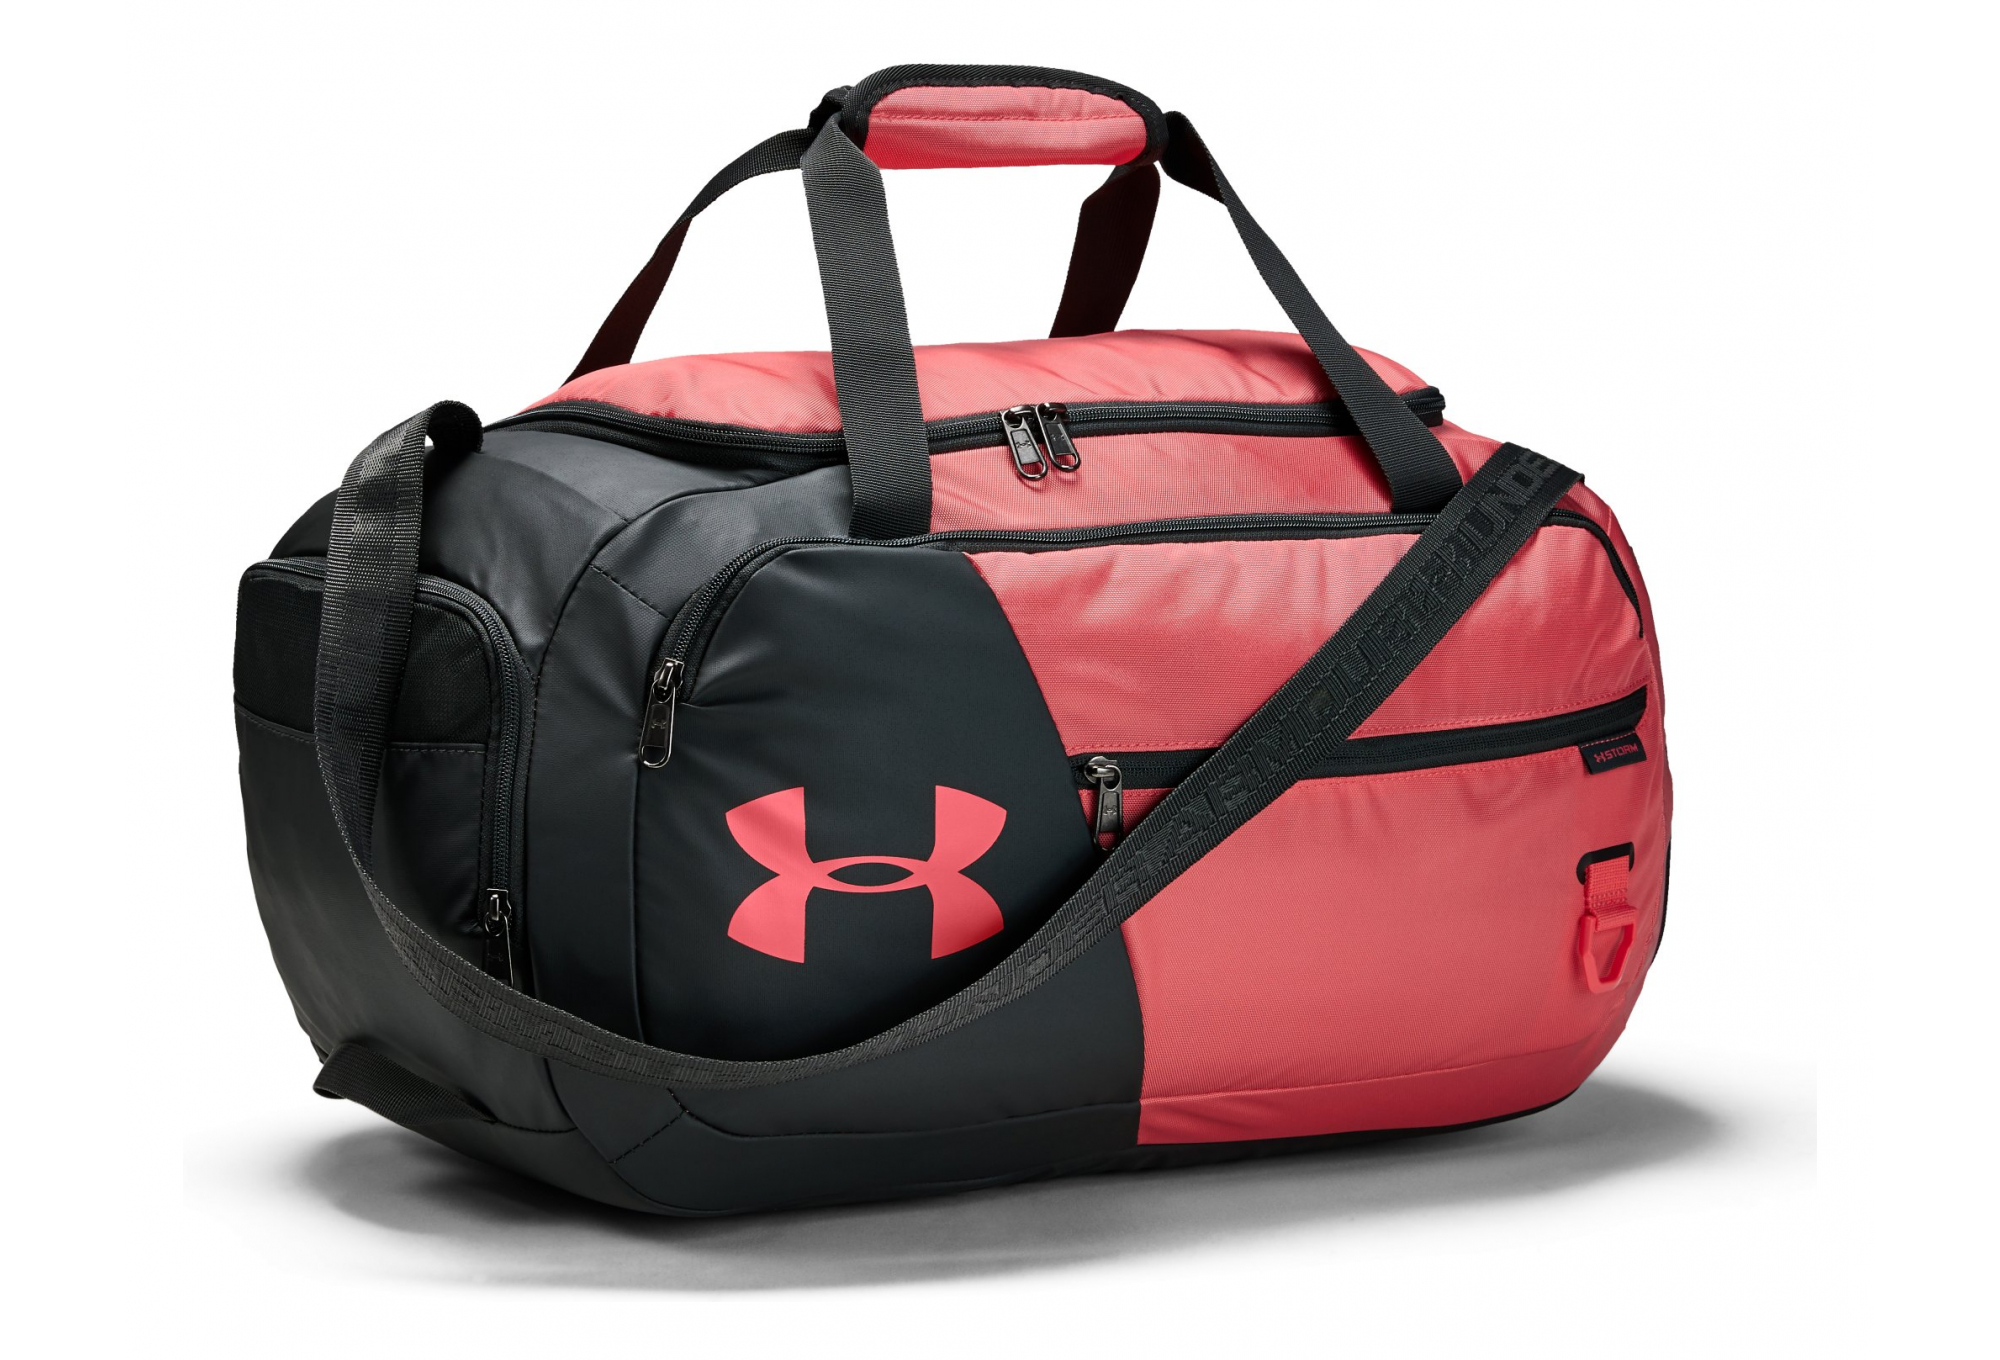 8d722be9de Under Armour Undeniable 4.0 Small Duffle Bag Red Black